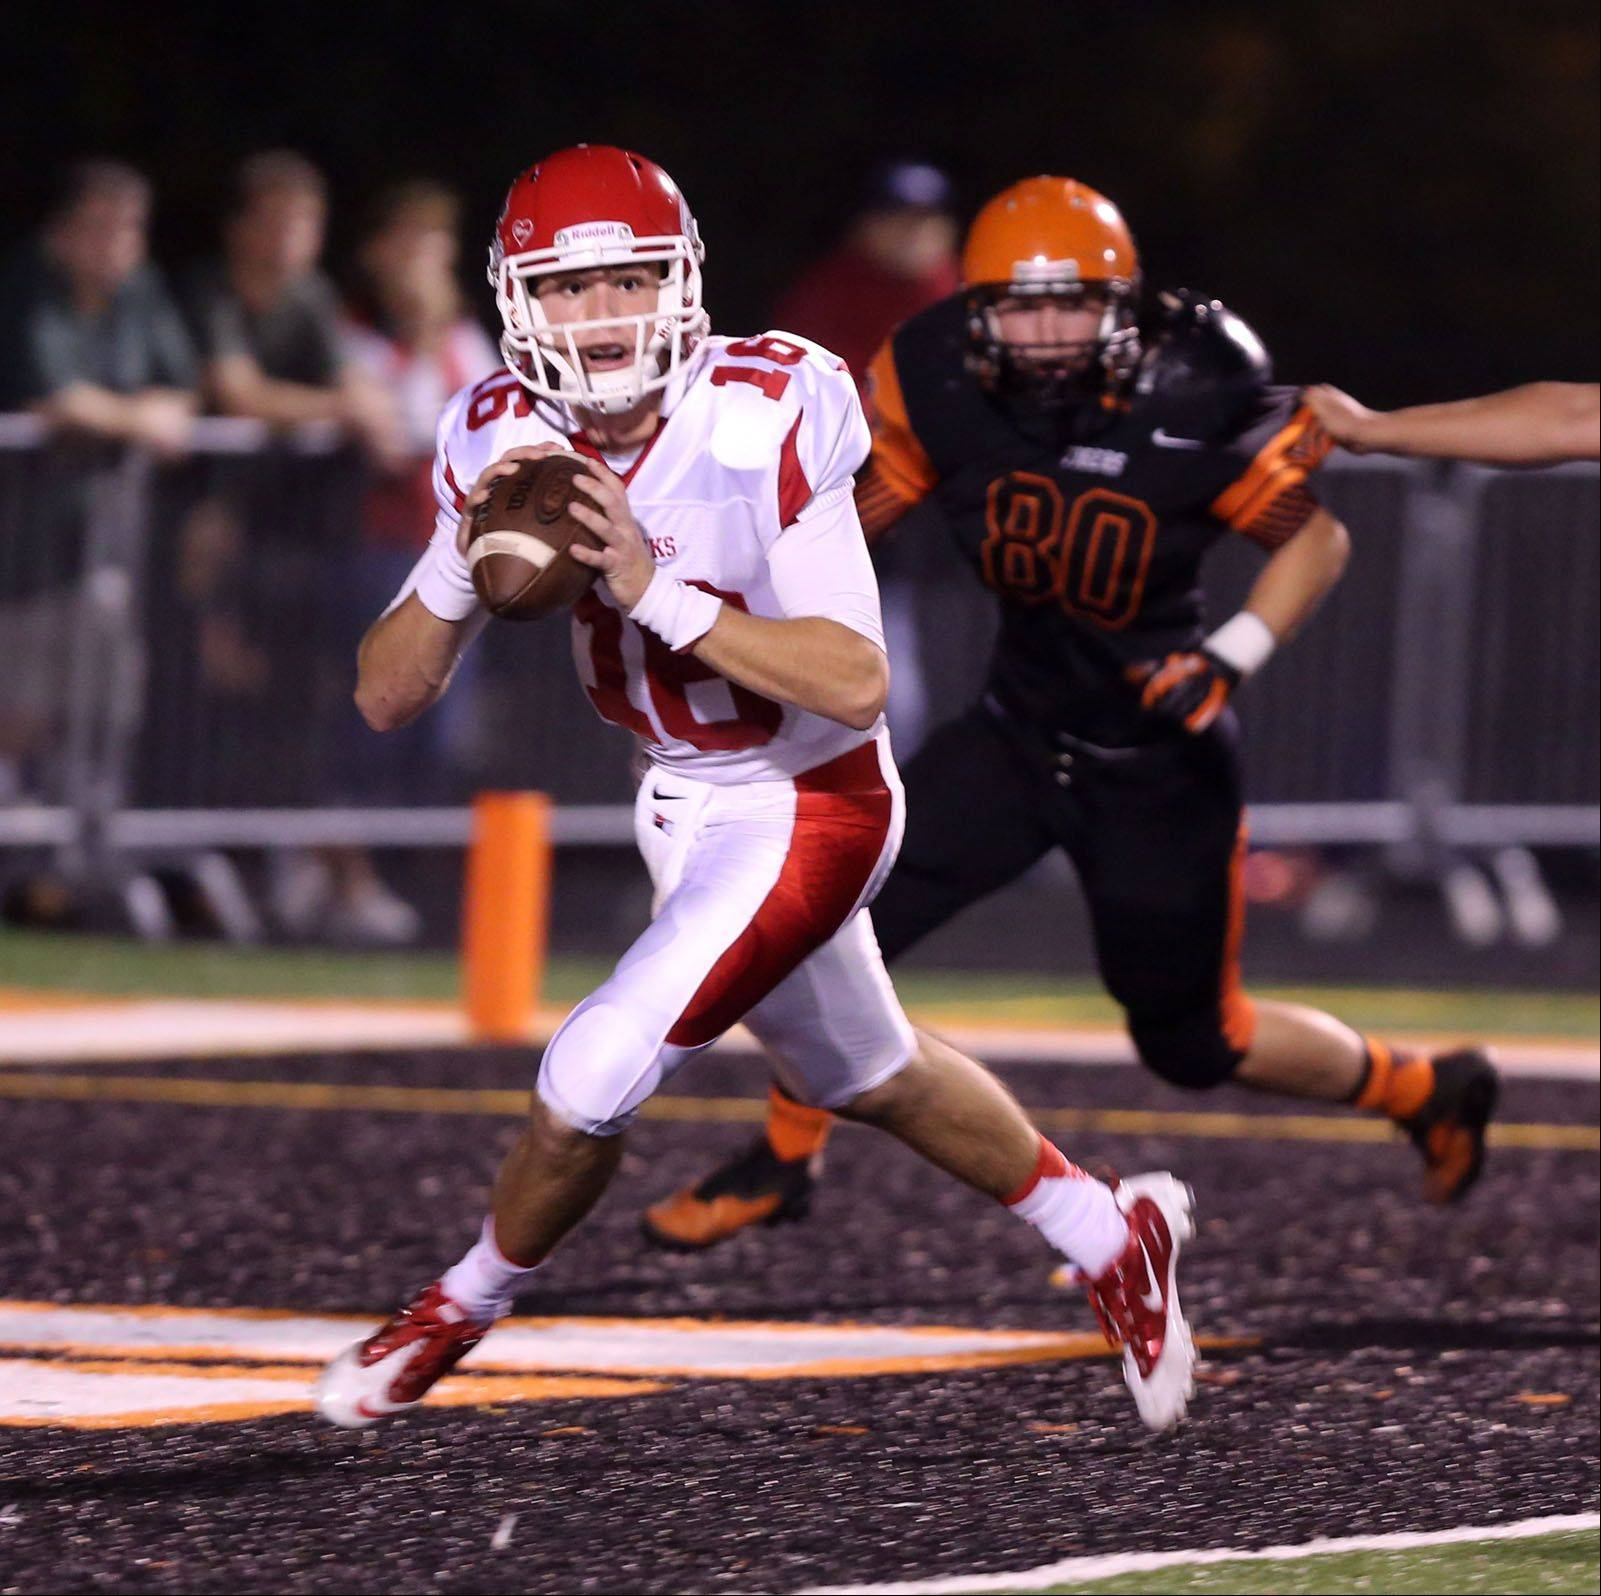 Naperville Central quarterback Jake Kolbe rolls out of the endzone against Wheaton Warrenville South.